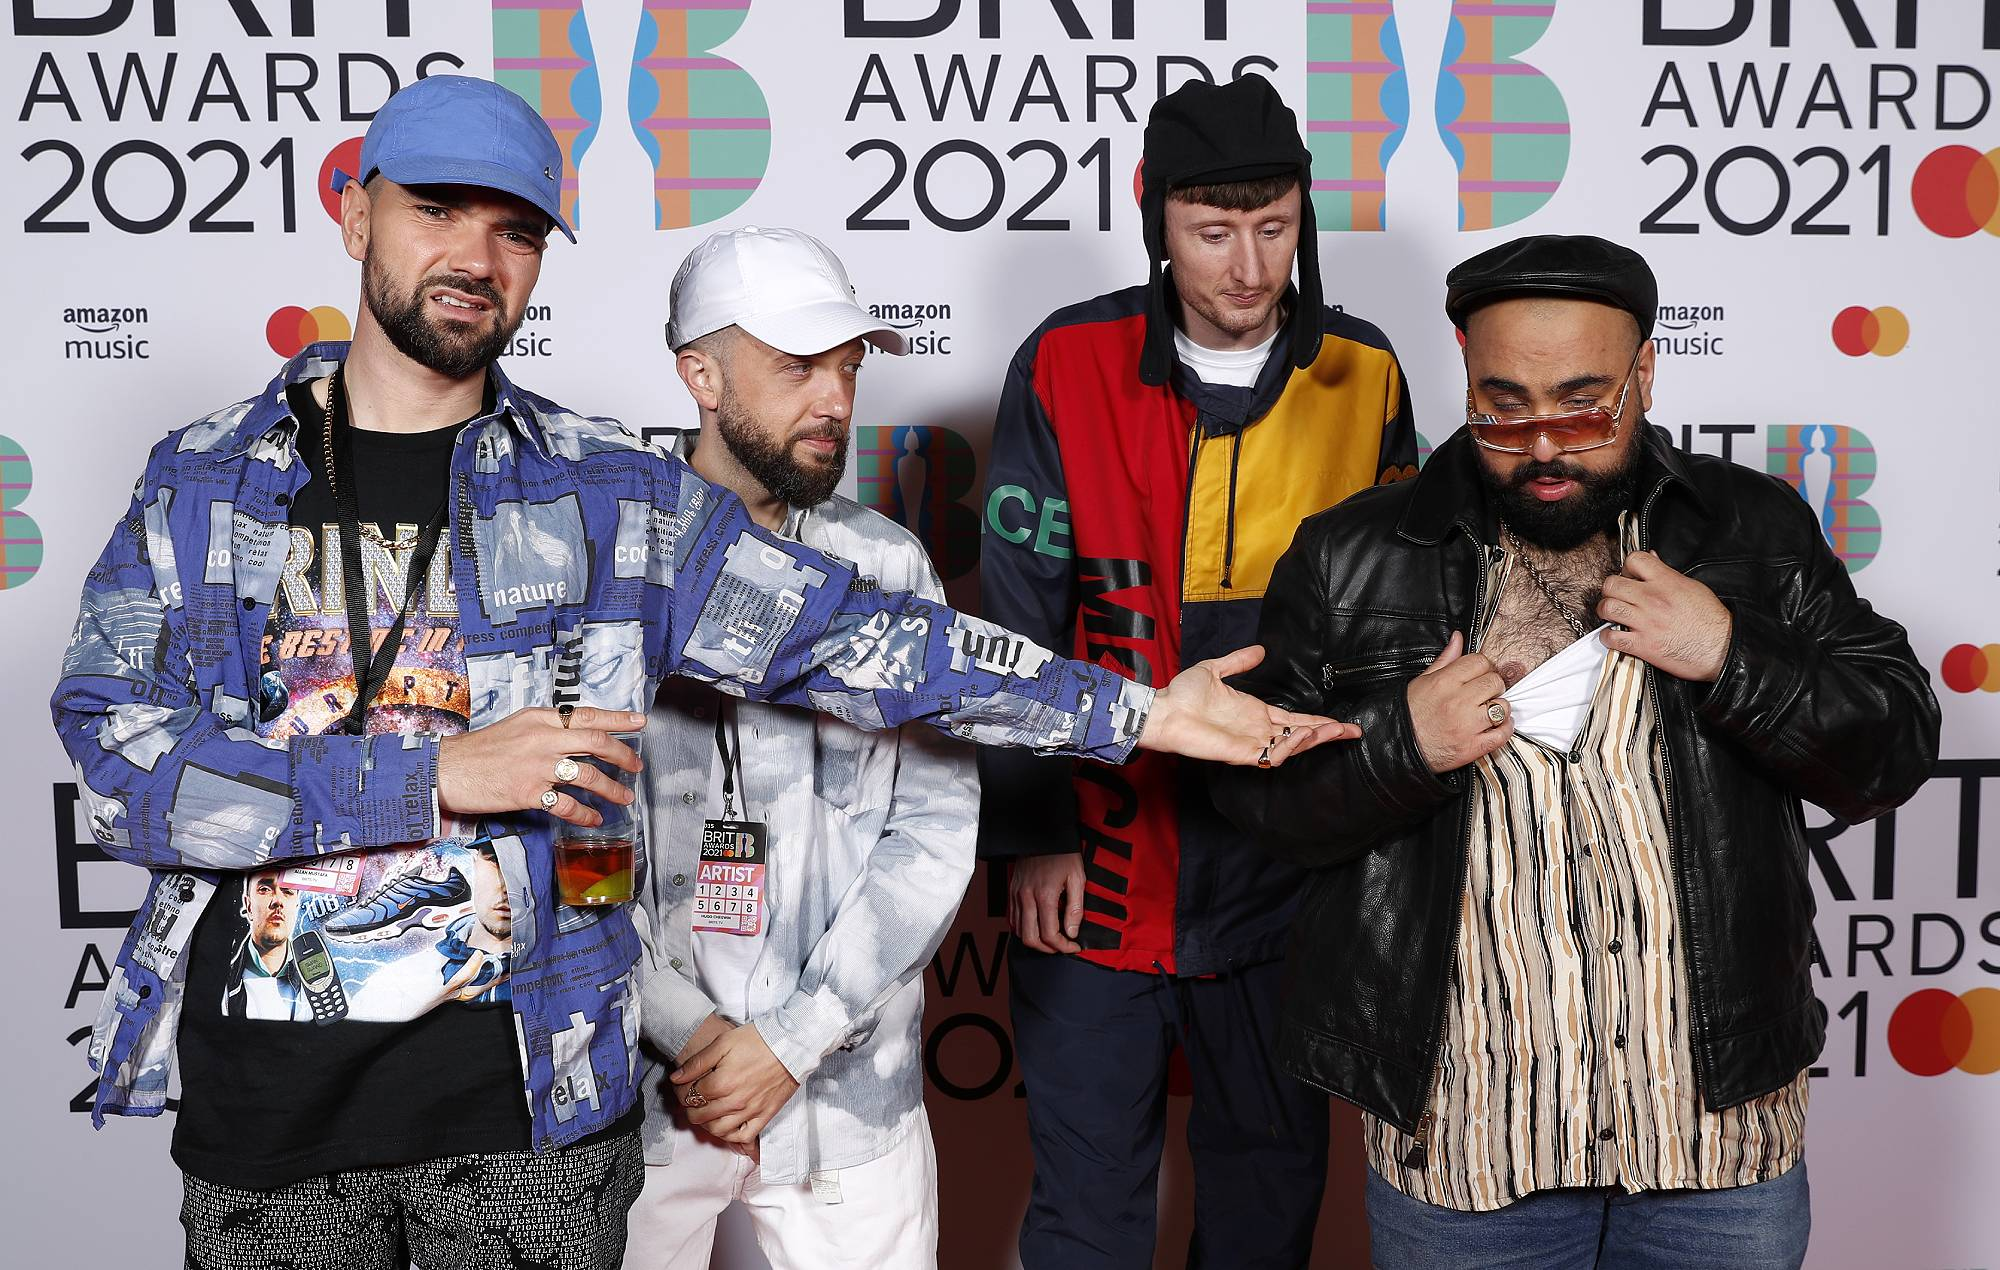 Allan Mustafa, Hugo Chegwin, Steve Stamp and Asim Chaudhry aka Chabuddy G of Kurupt FM pose in the media room at The BRIT Awards 2021 at The O2 Arena on May 11, 2021 in London, England. (Photo by JMEnternational/JMEnternational for BRIT Awards/Getty Images)